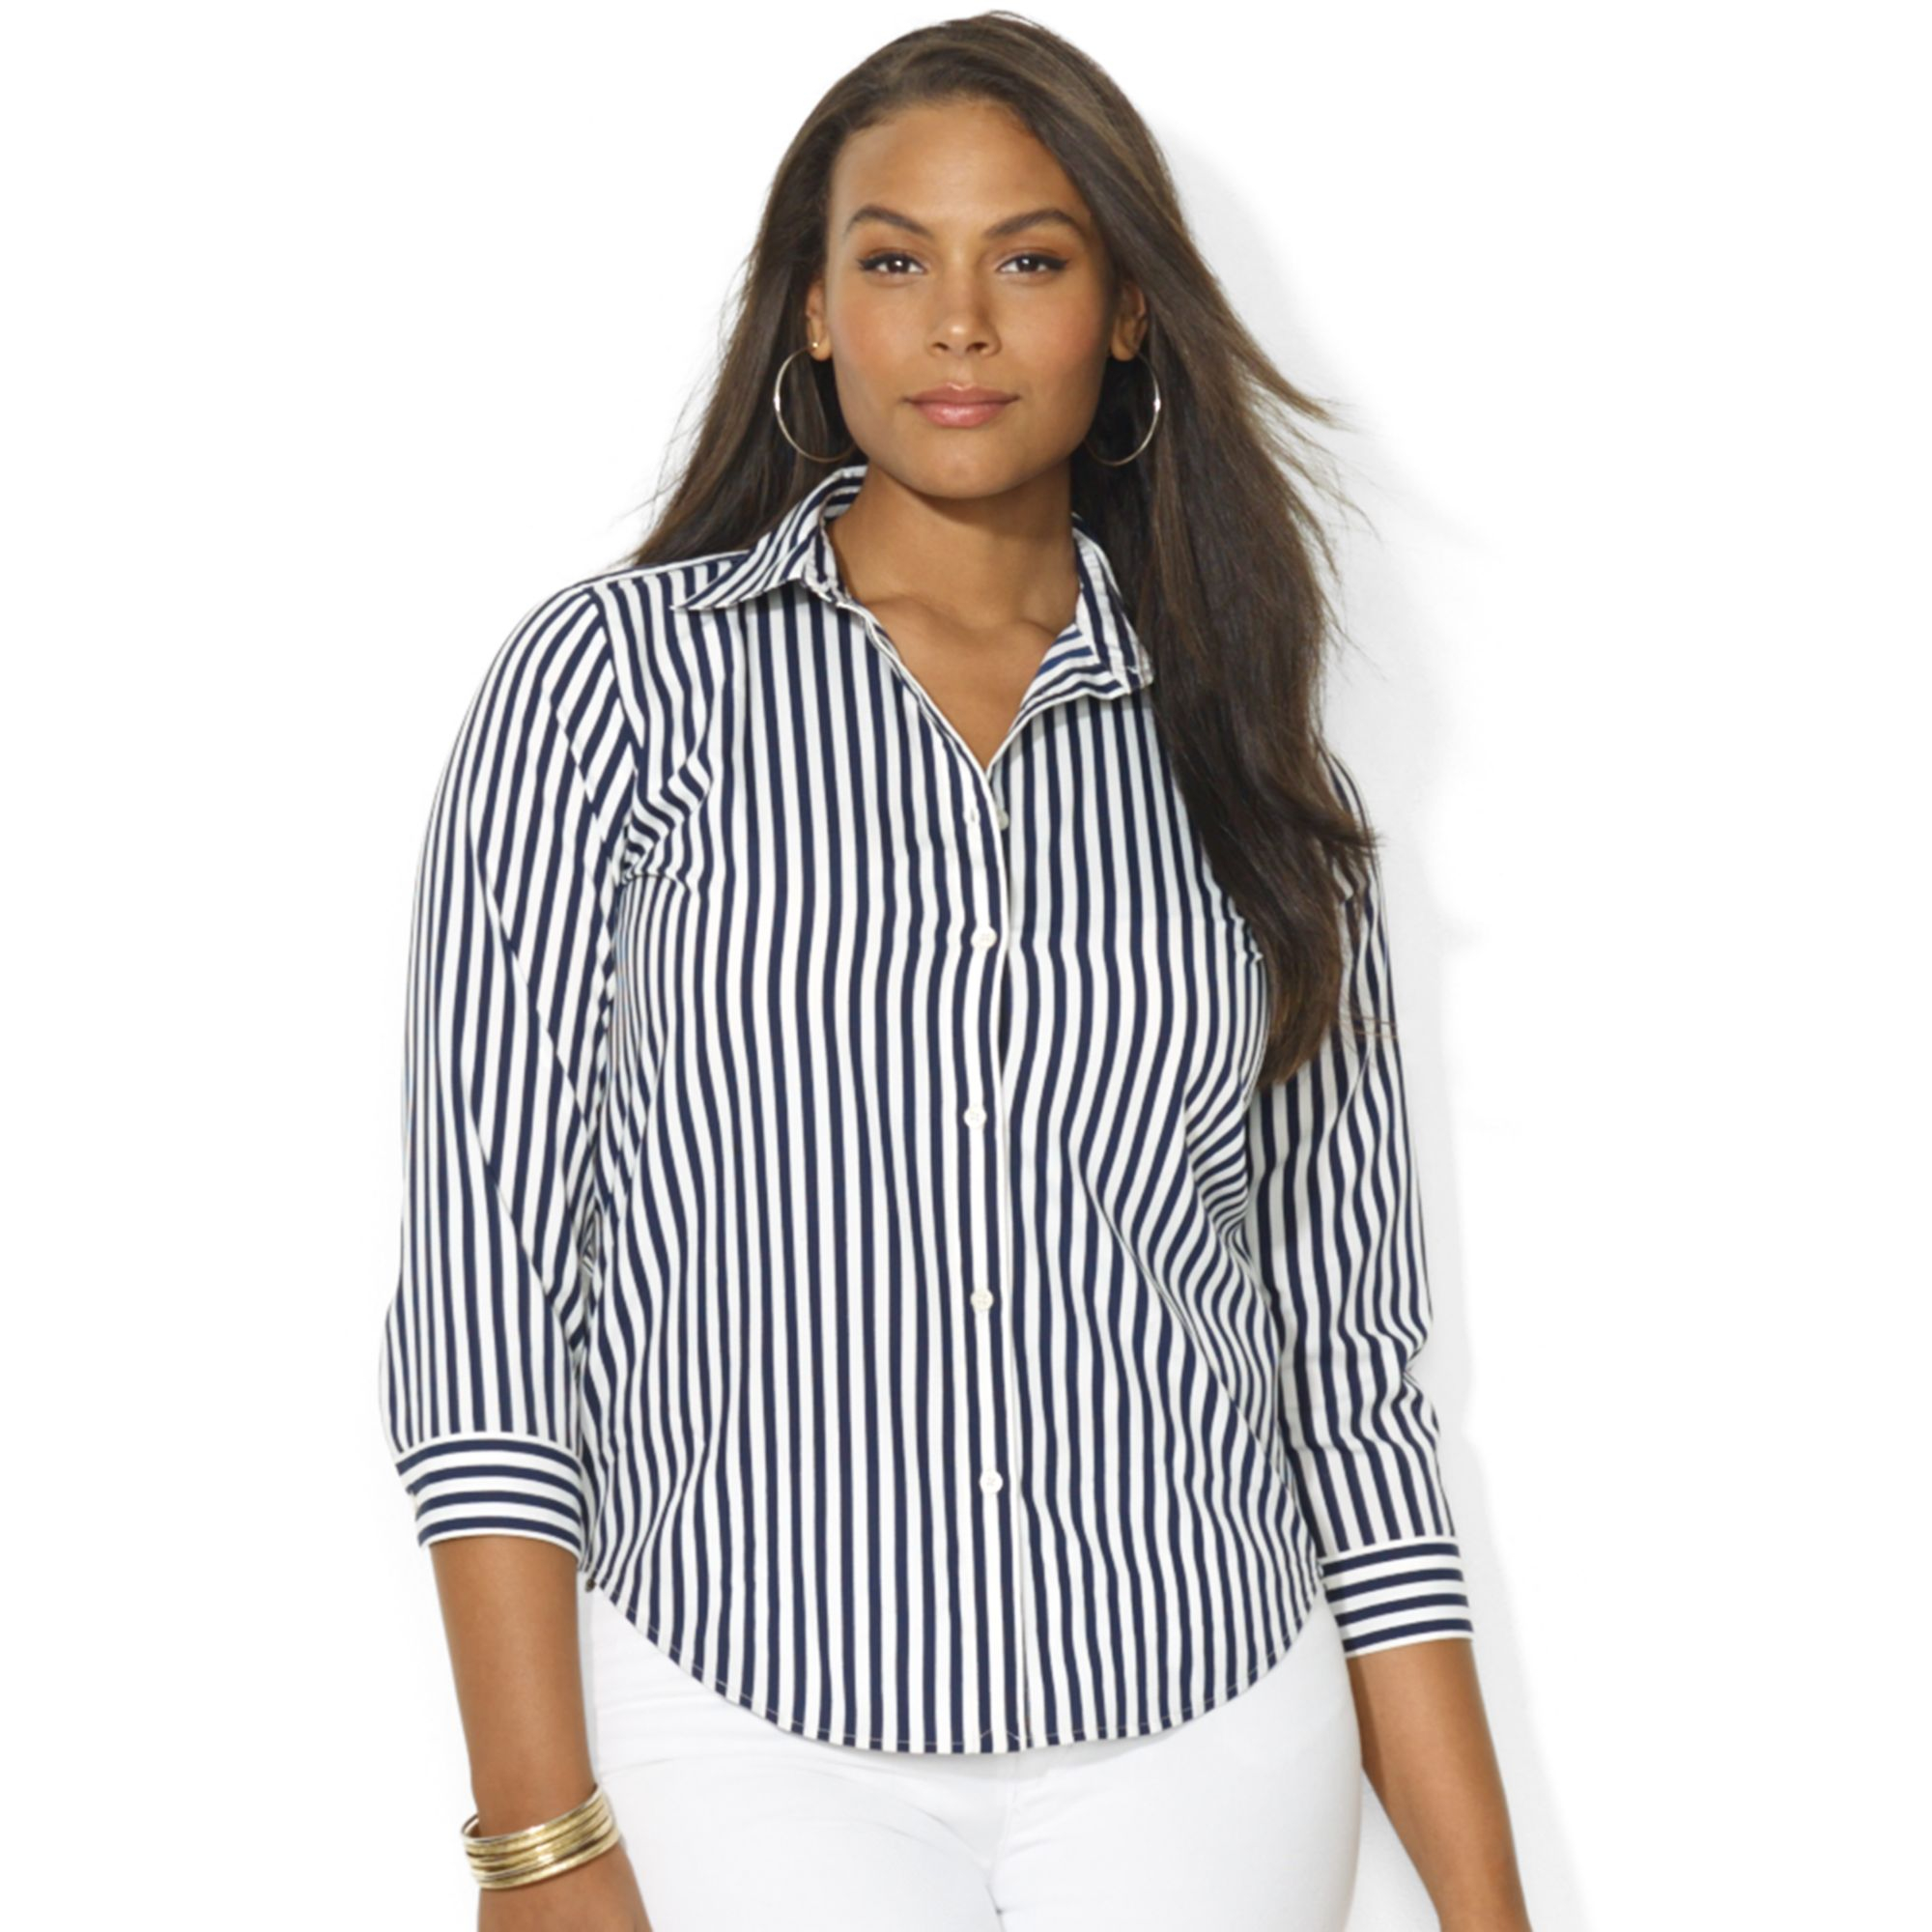 We have 27 Macys promotional codes for you to choose from including 3 coupon codes, 22 sales, and 2 deals. Most popular now: 20% Off Macys Discount. Latest offer: % Off Shoes for Women.